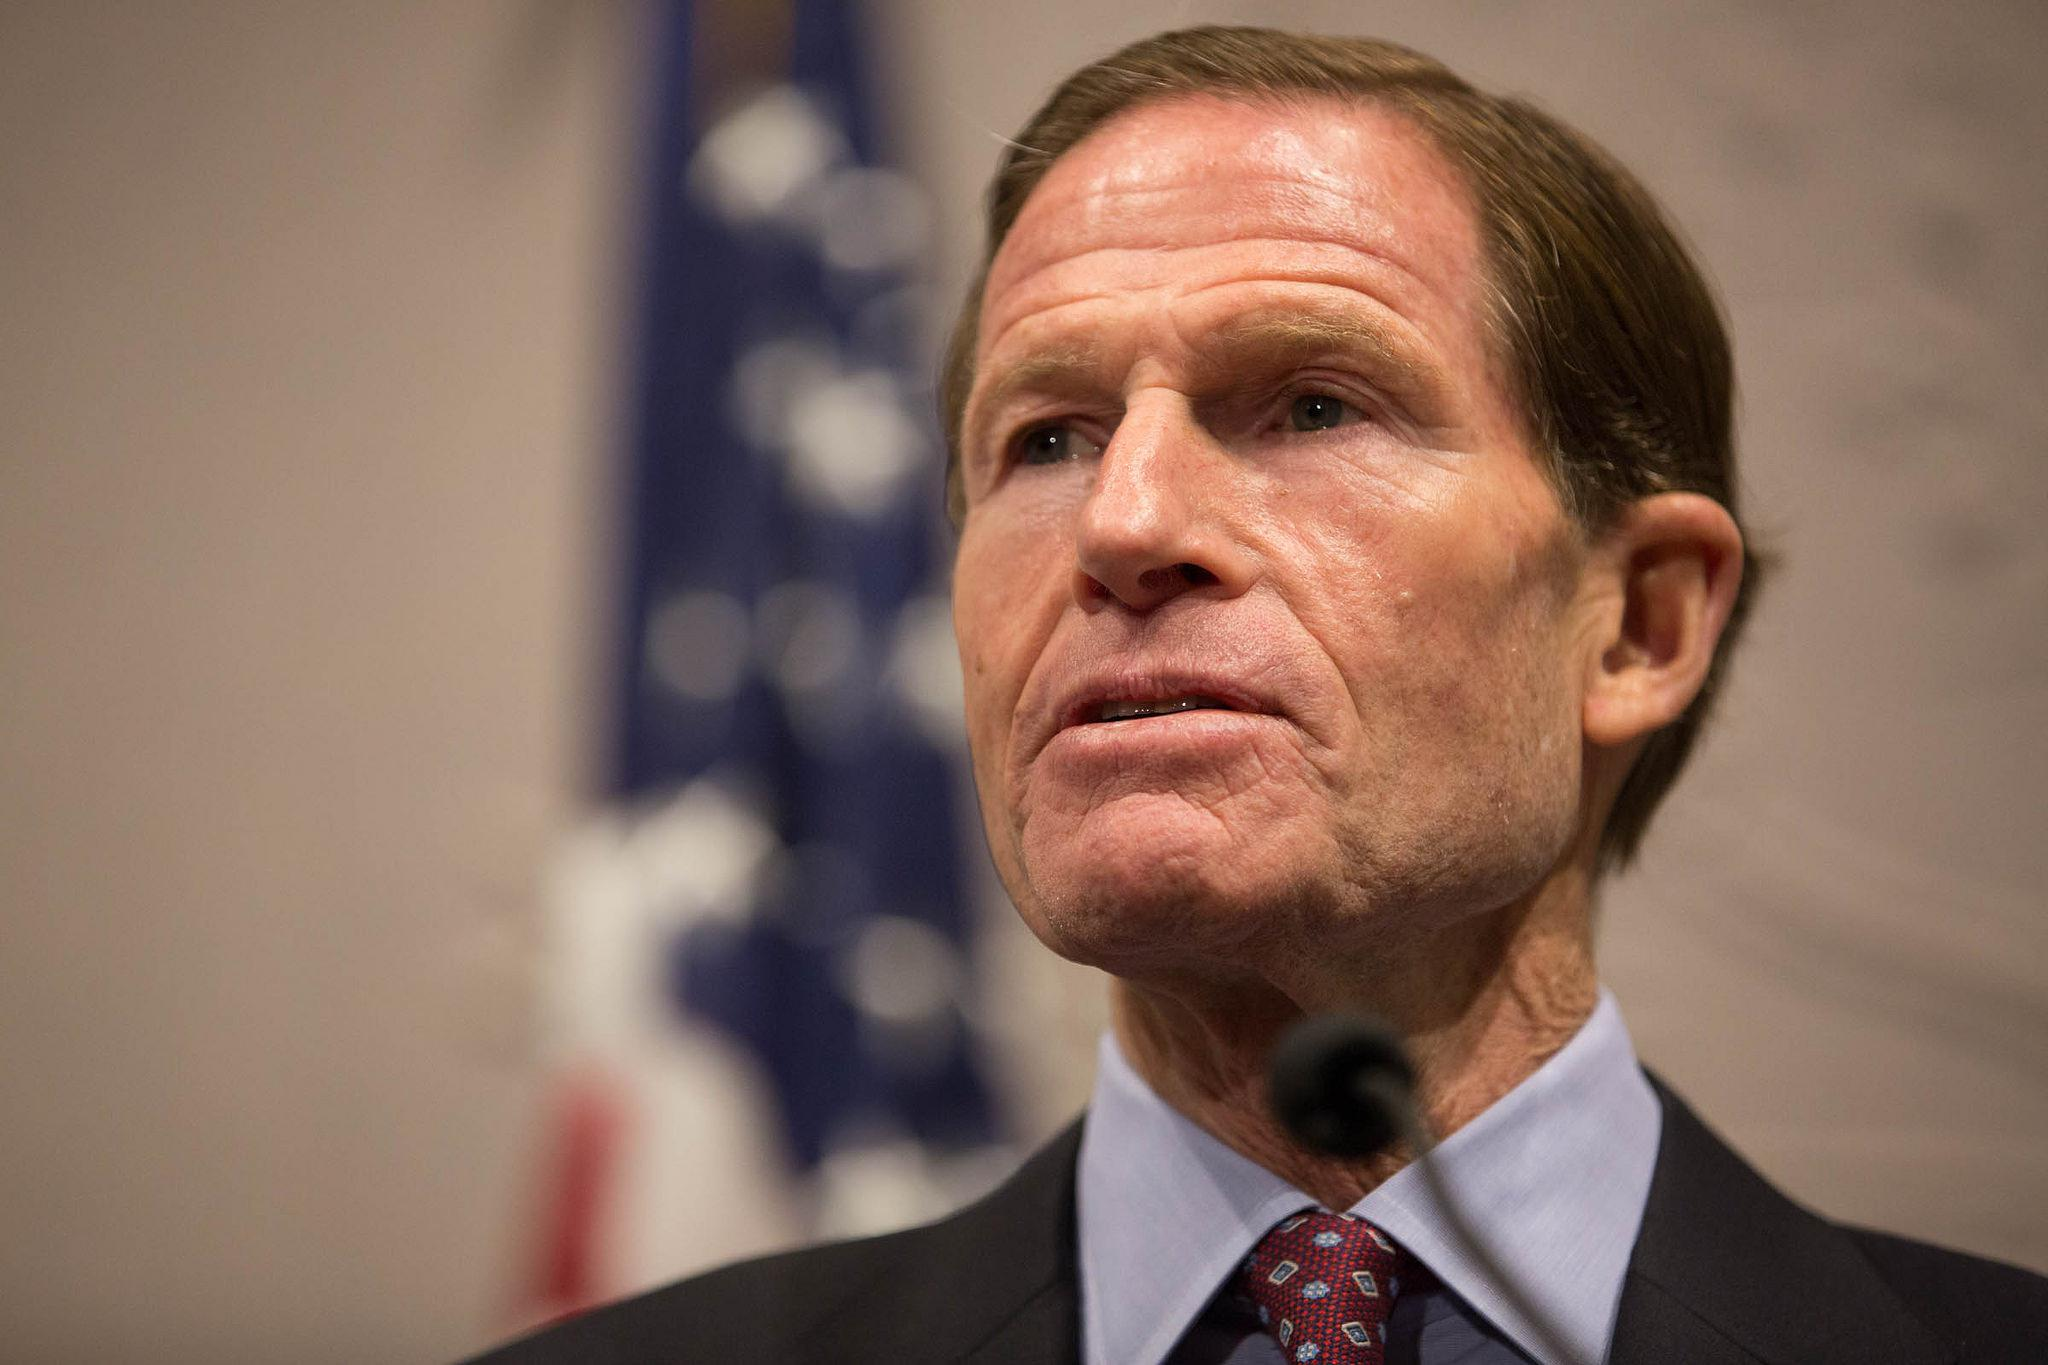 Image result for Richard Blumenthal, photos